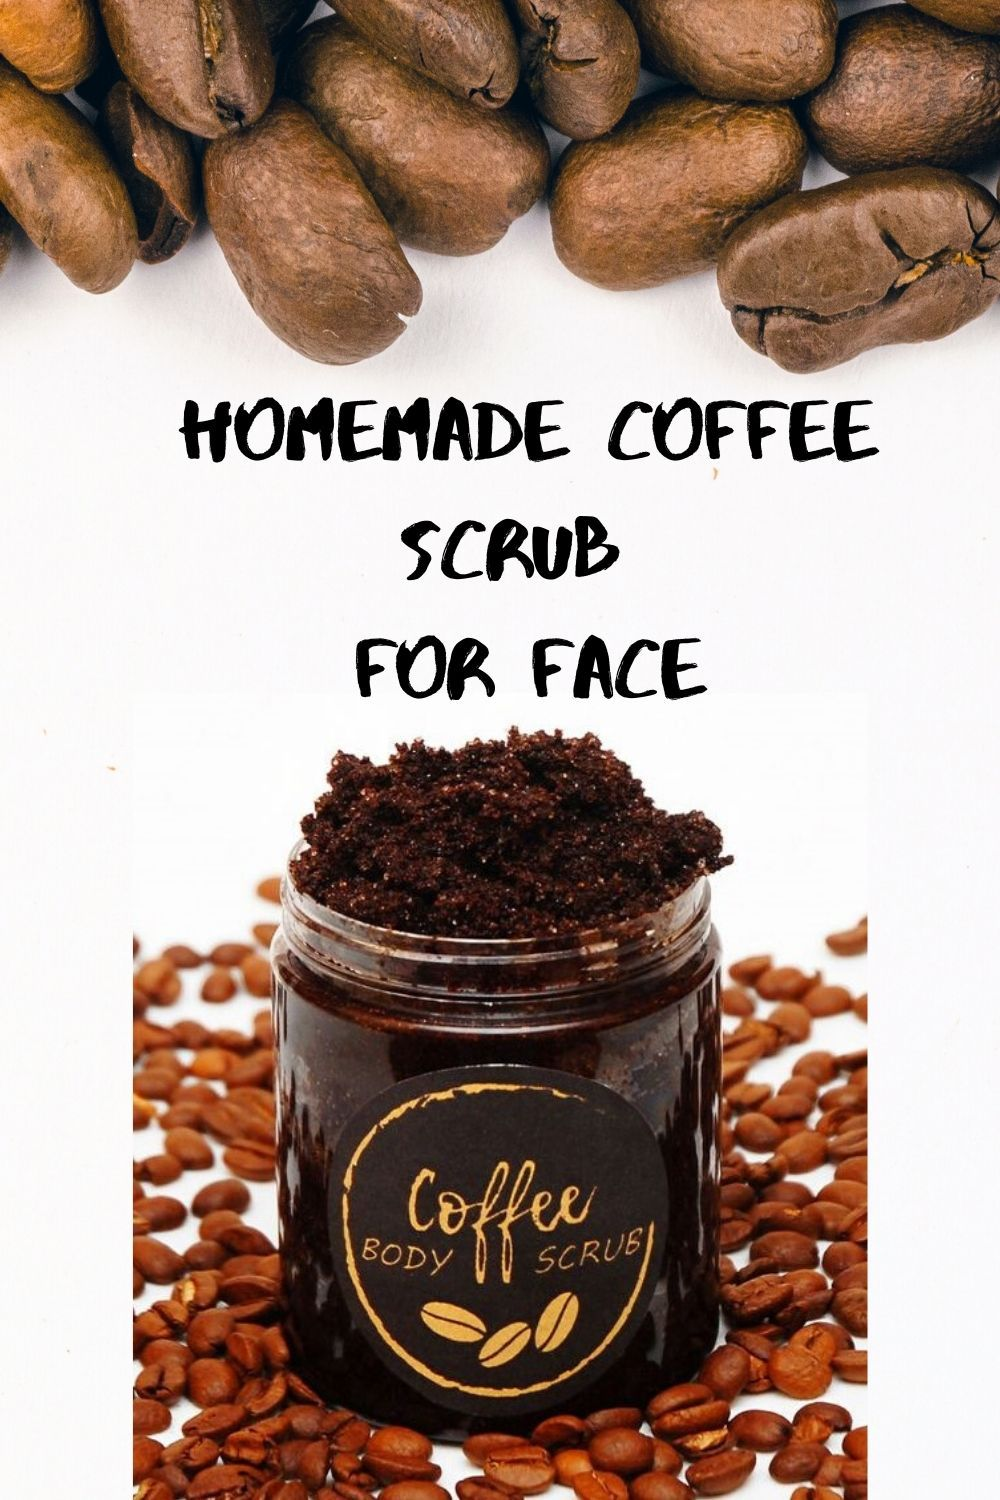 How to make your own homemade coffee scrub for face in